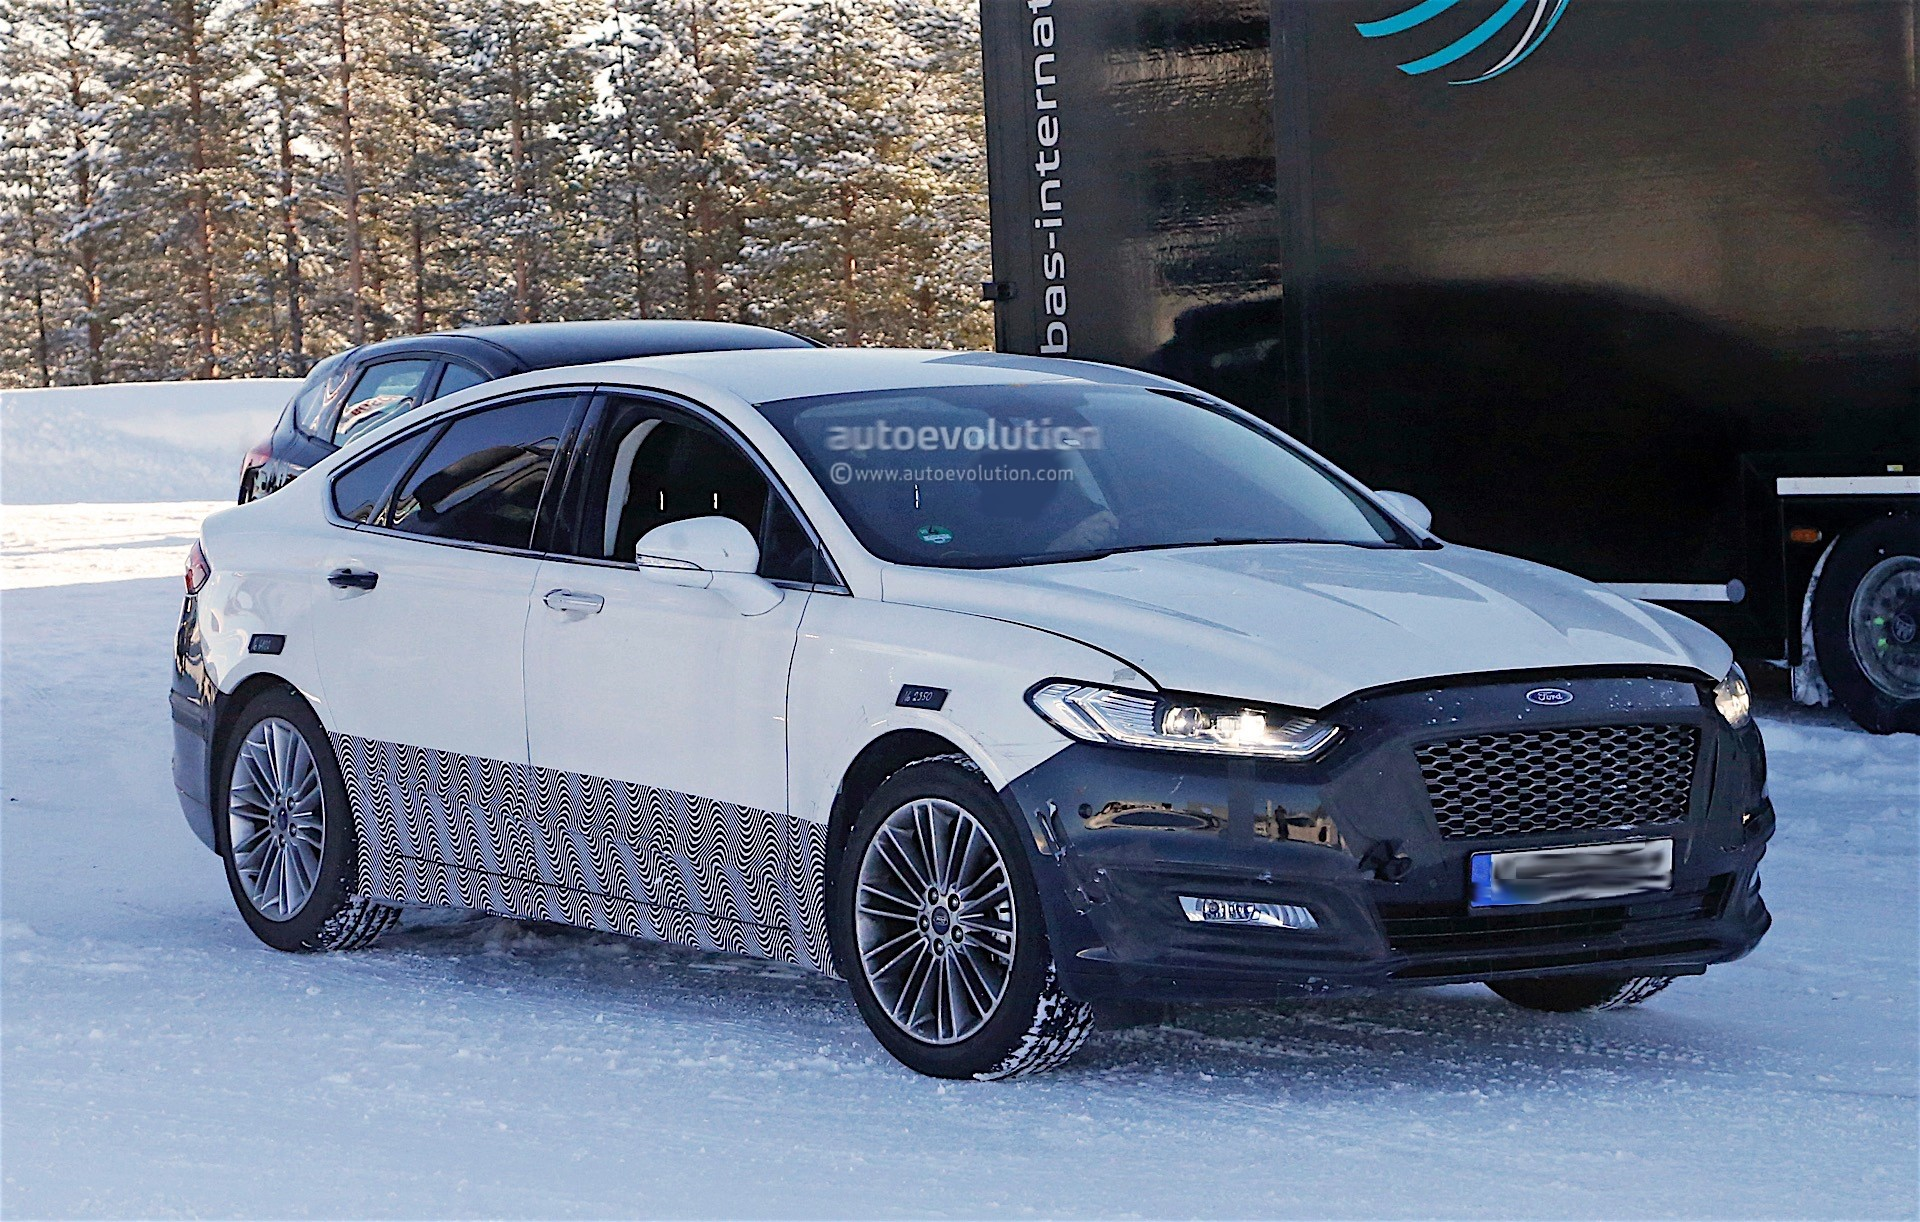 2017 Ford Fusion 2 0 Ecoboost >> 2017 Ford Mondeo Facelift Spyshots Reveal Refreshed Lights and Bumpers - autoevolution